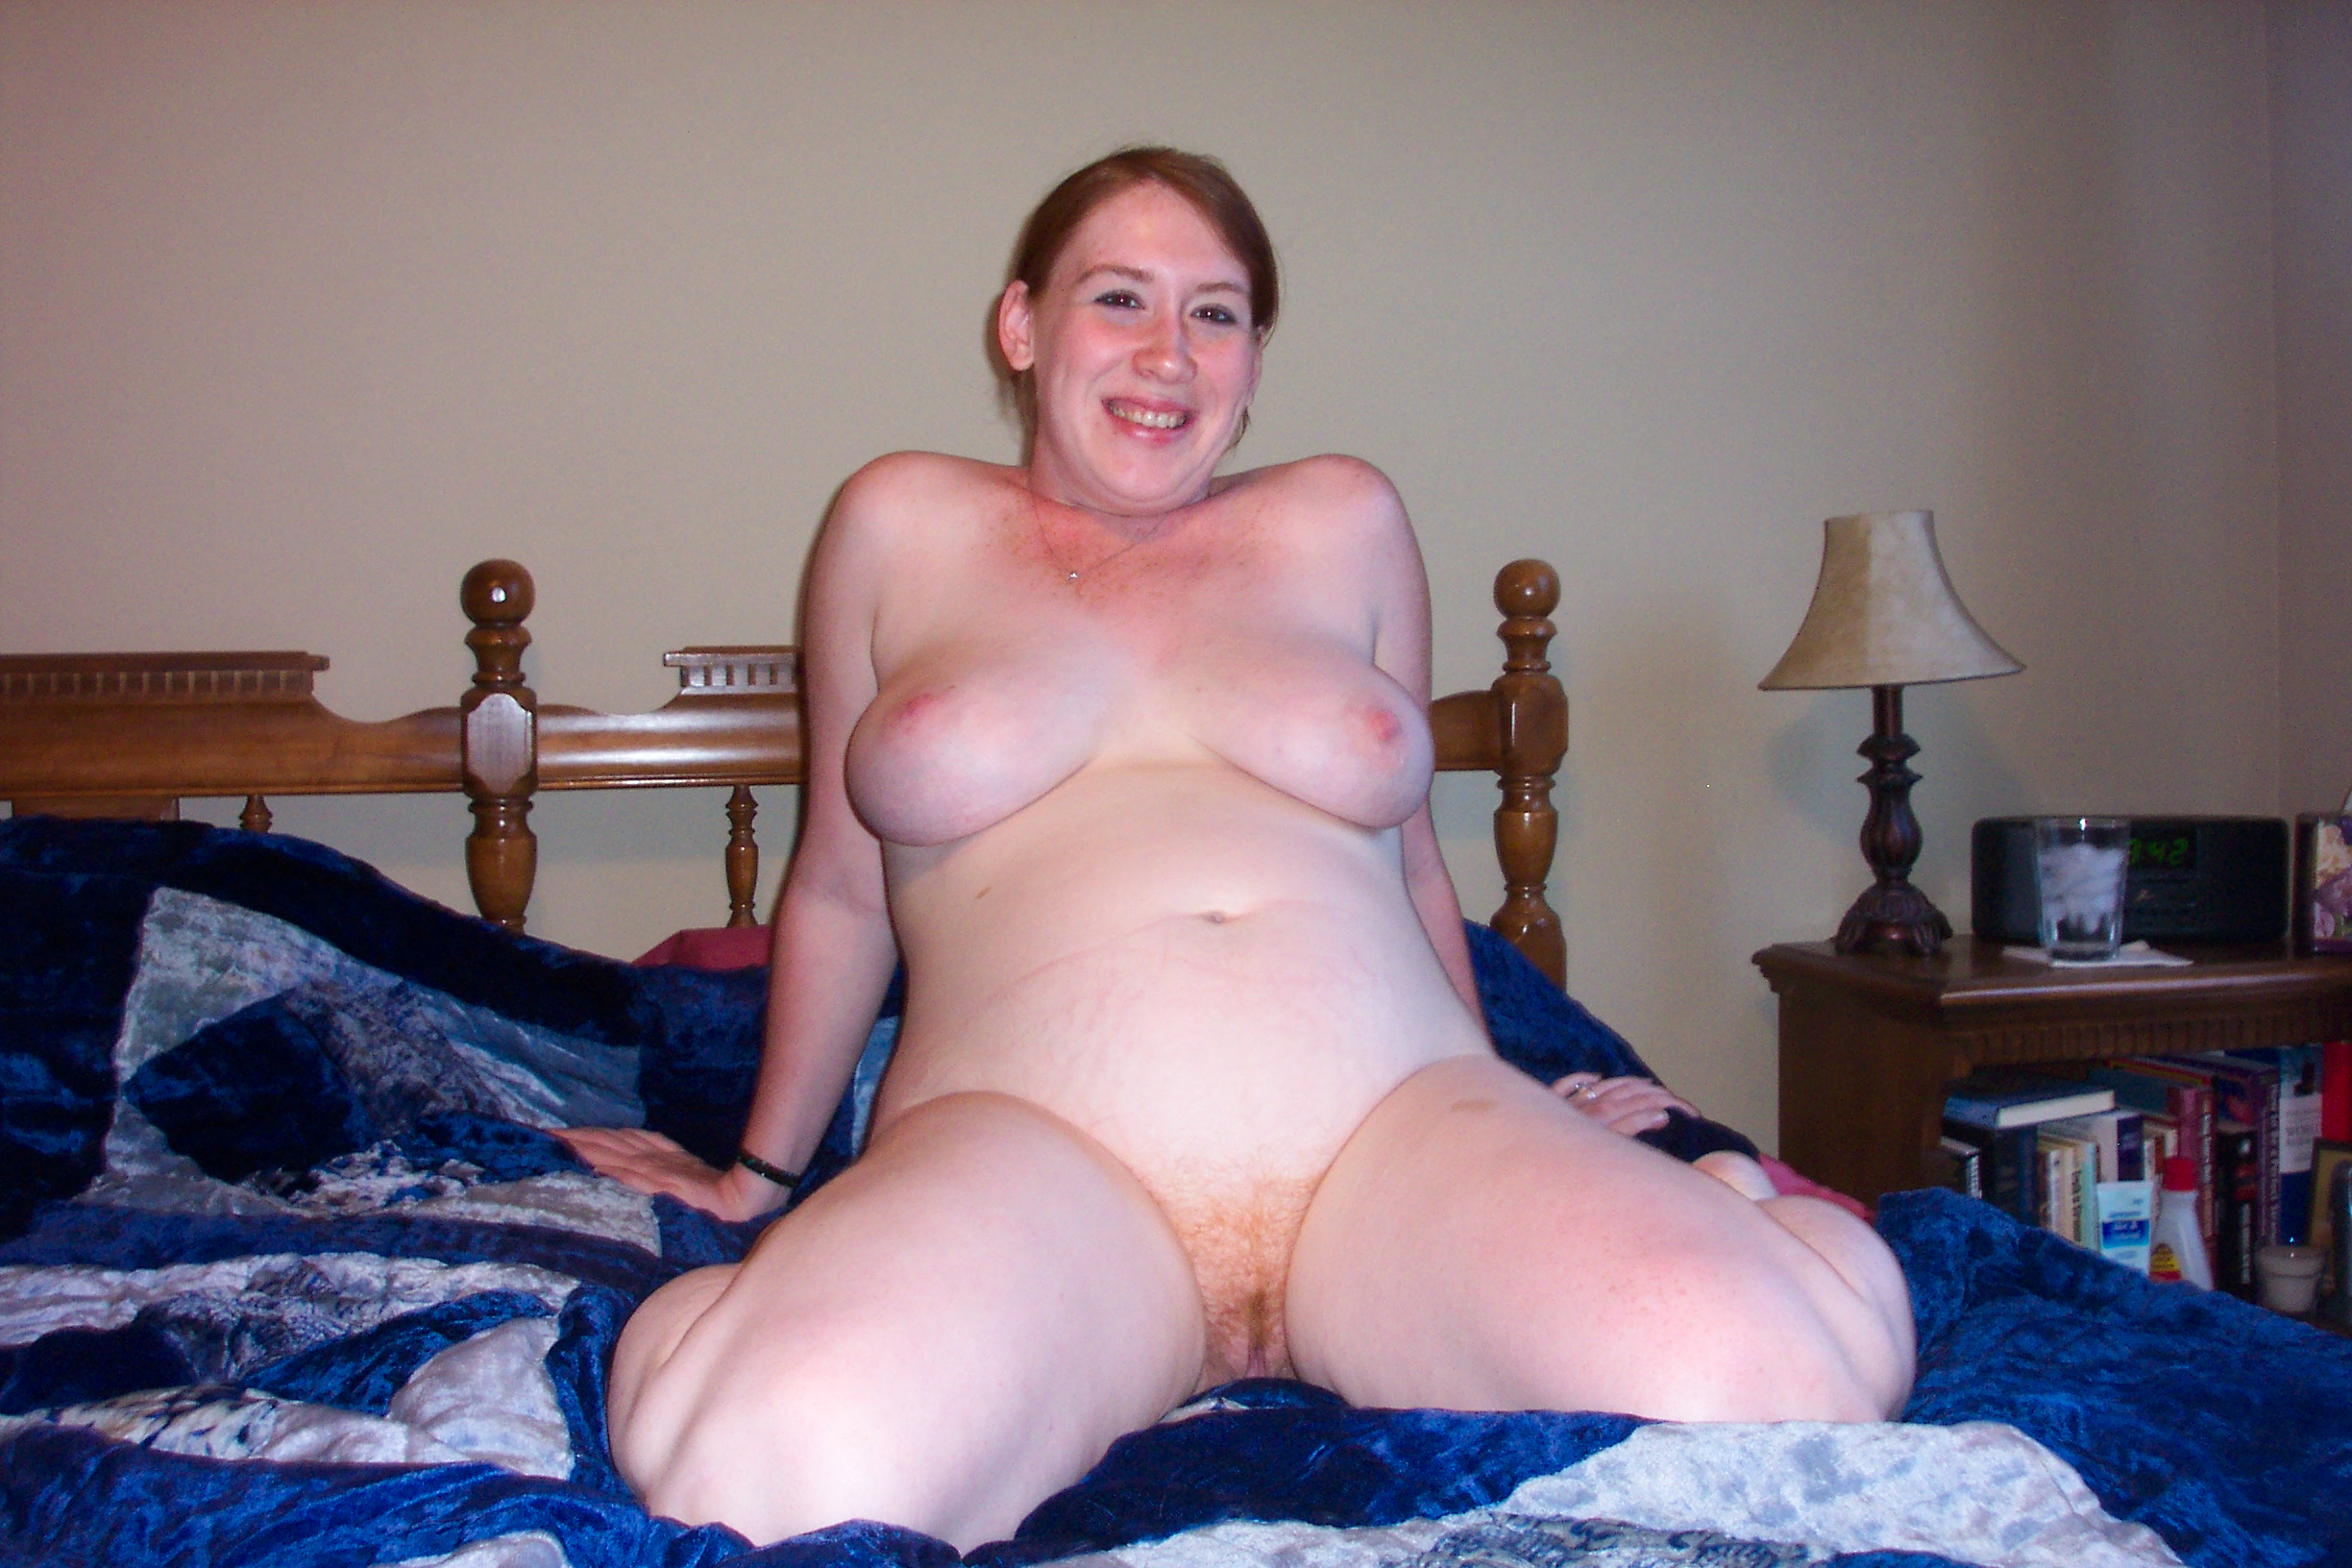 image Redhead cute slut prefers hard anal sex over anything